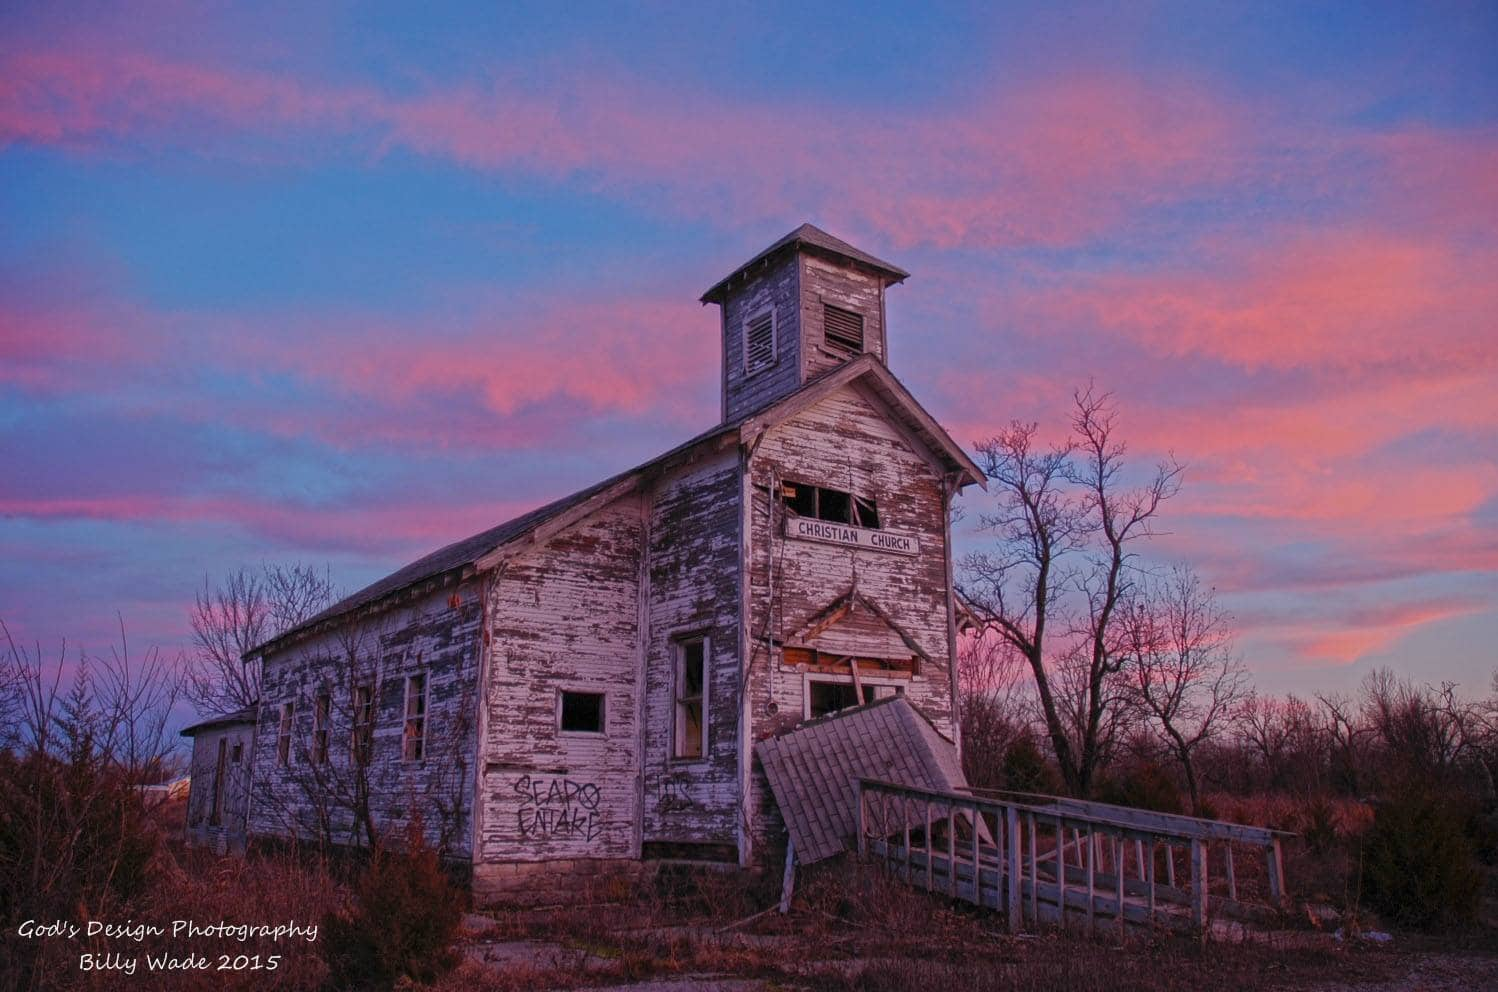 Another Sunset of the Picher Oklahoma Christian Church, Gotta Say it Sure is a Beautiful Abandoned Church Located in Picher Oklahoma